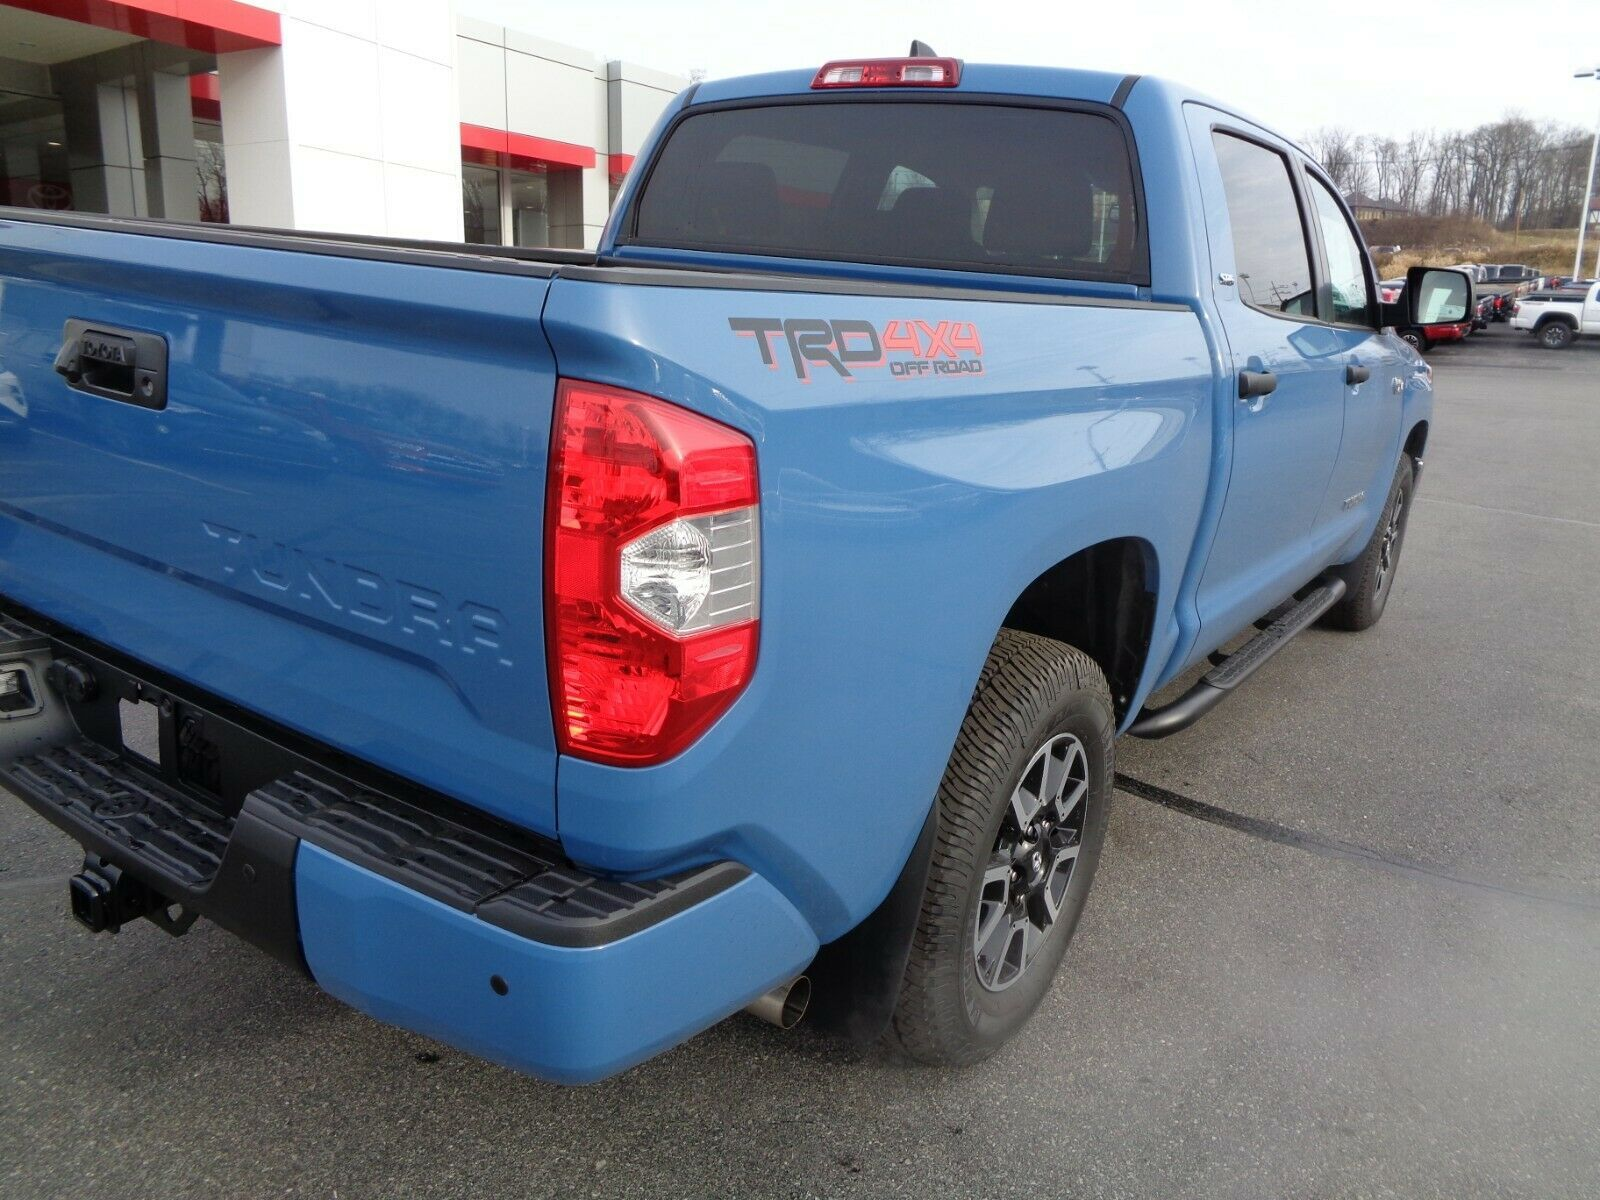 Toyota Christmas Deals Used 2020 Used 2020 Toyota Tundra 2020 Tundra Crewmax TRD Off Road 4WD Blue